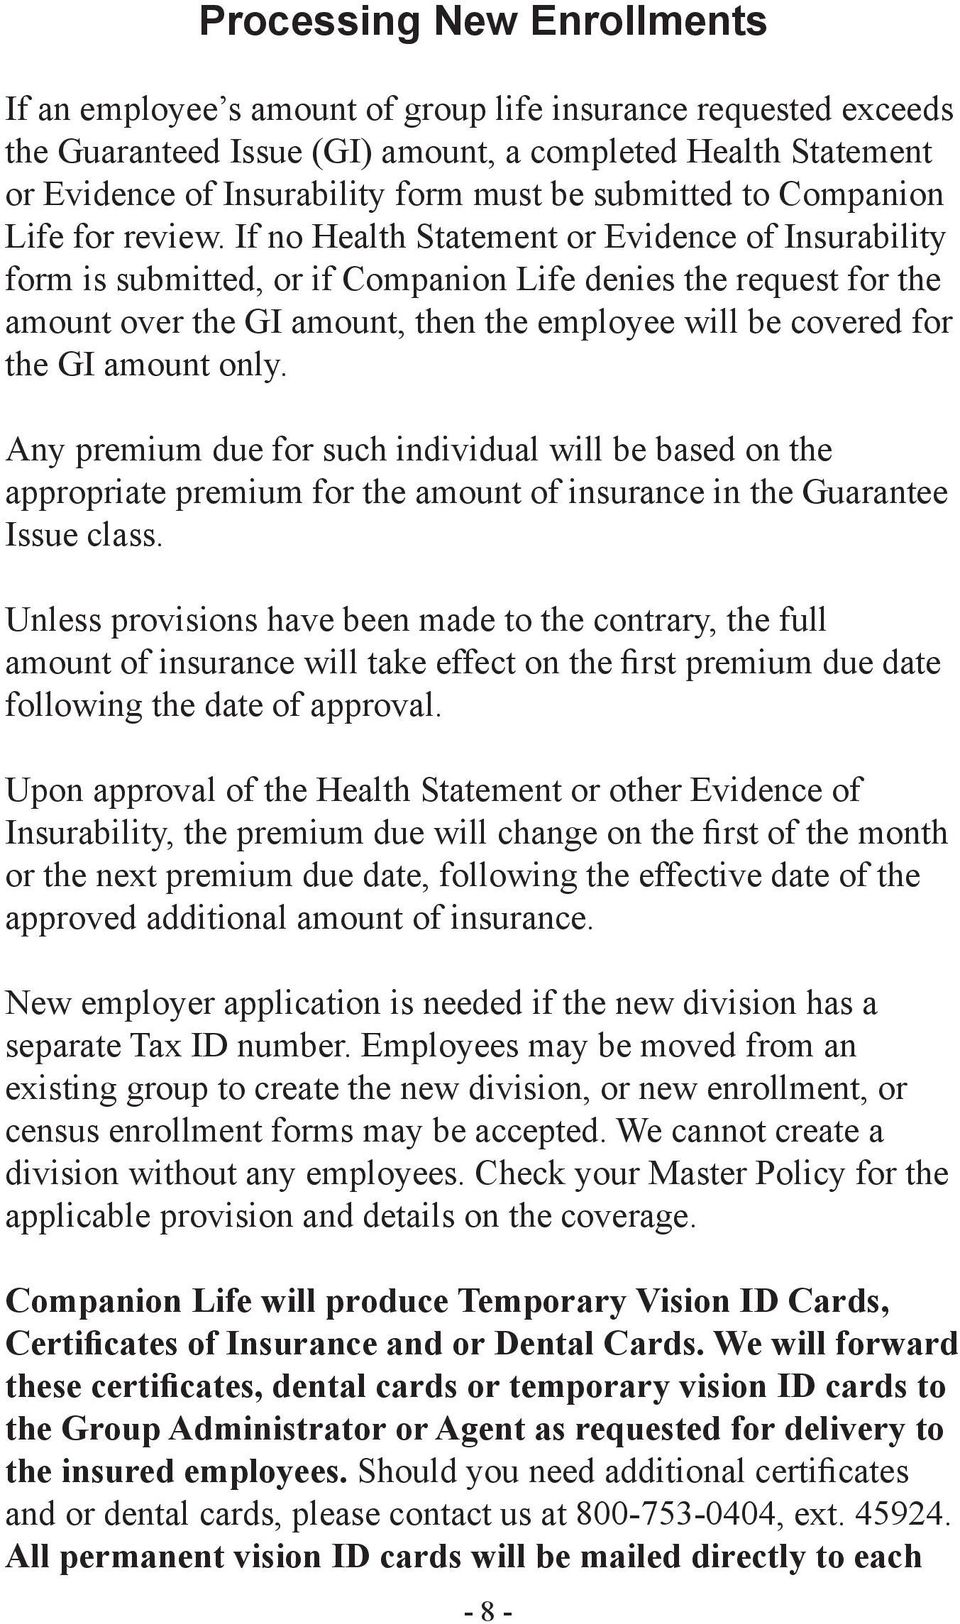 If no Health Statement or Evidence of Insurability form is submitted, or if Companion Life denies the request for the amount over the GI amount, then the employee will be covered for the GI amount